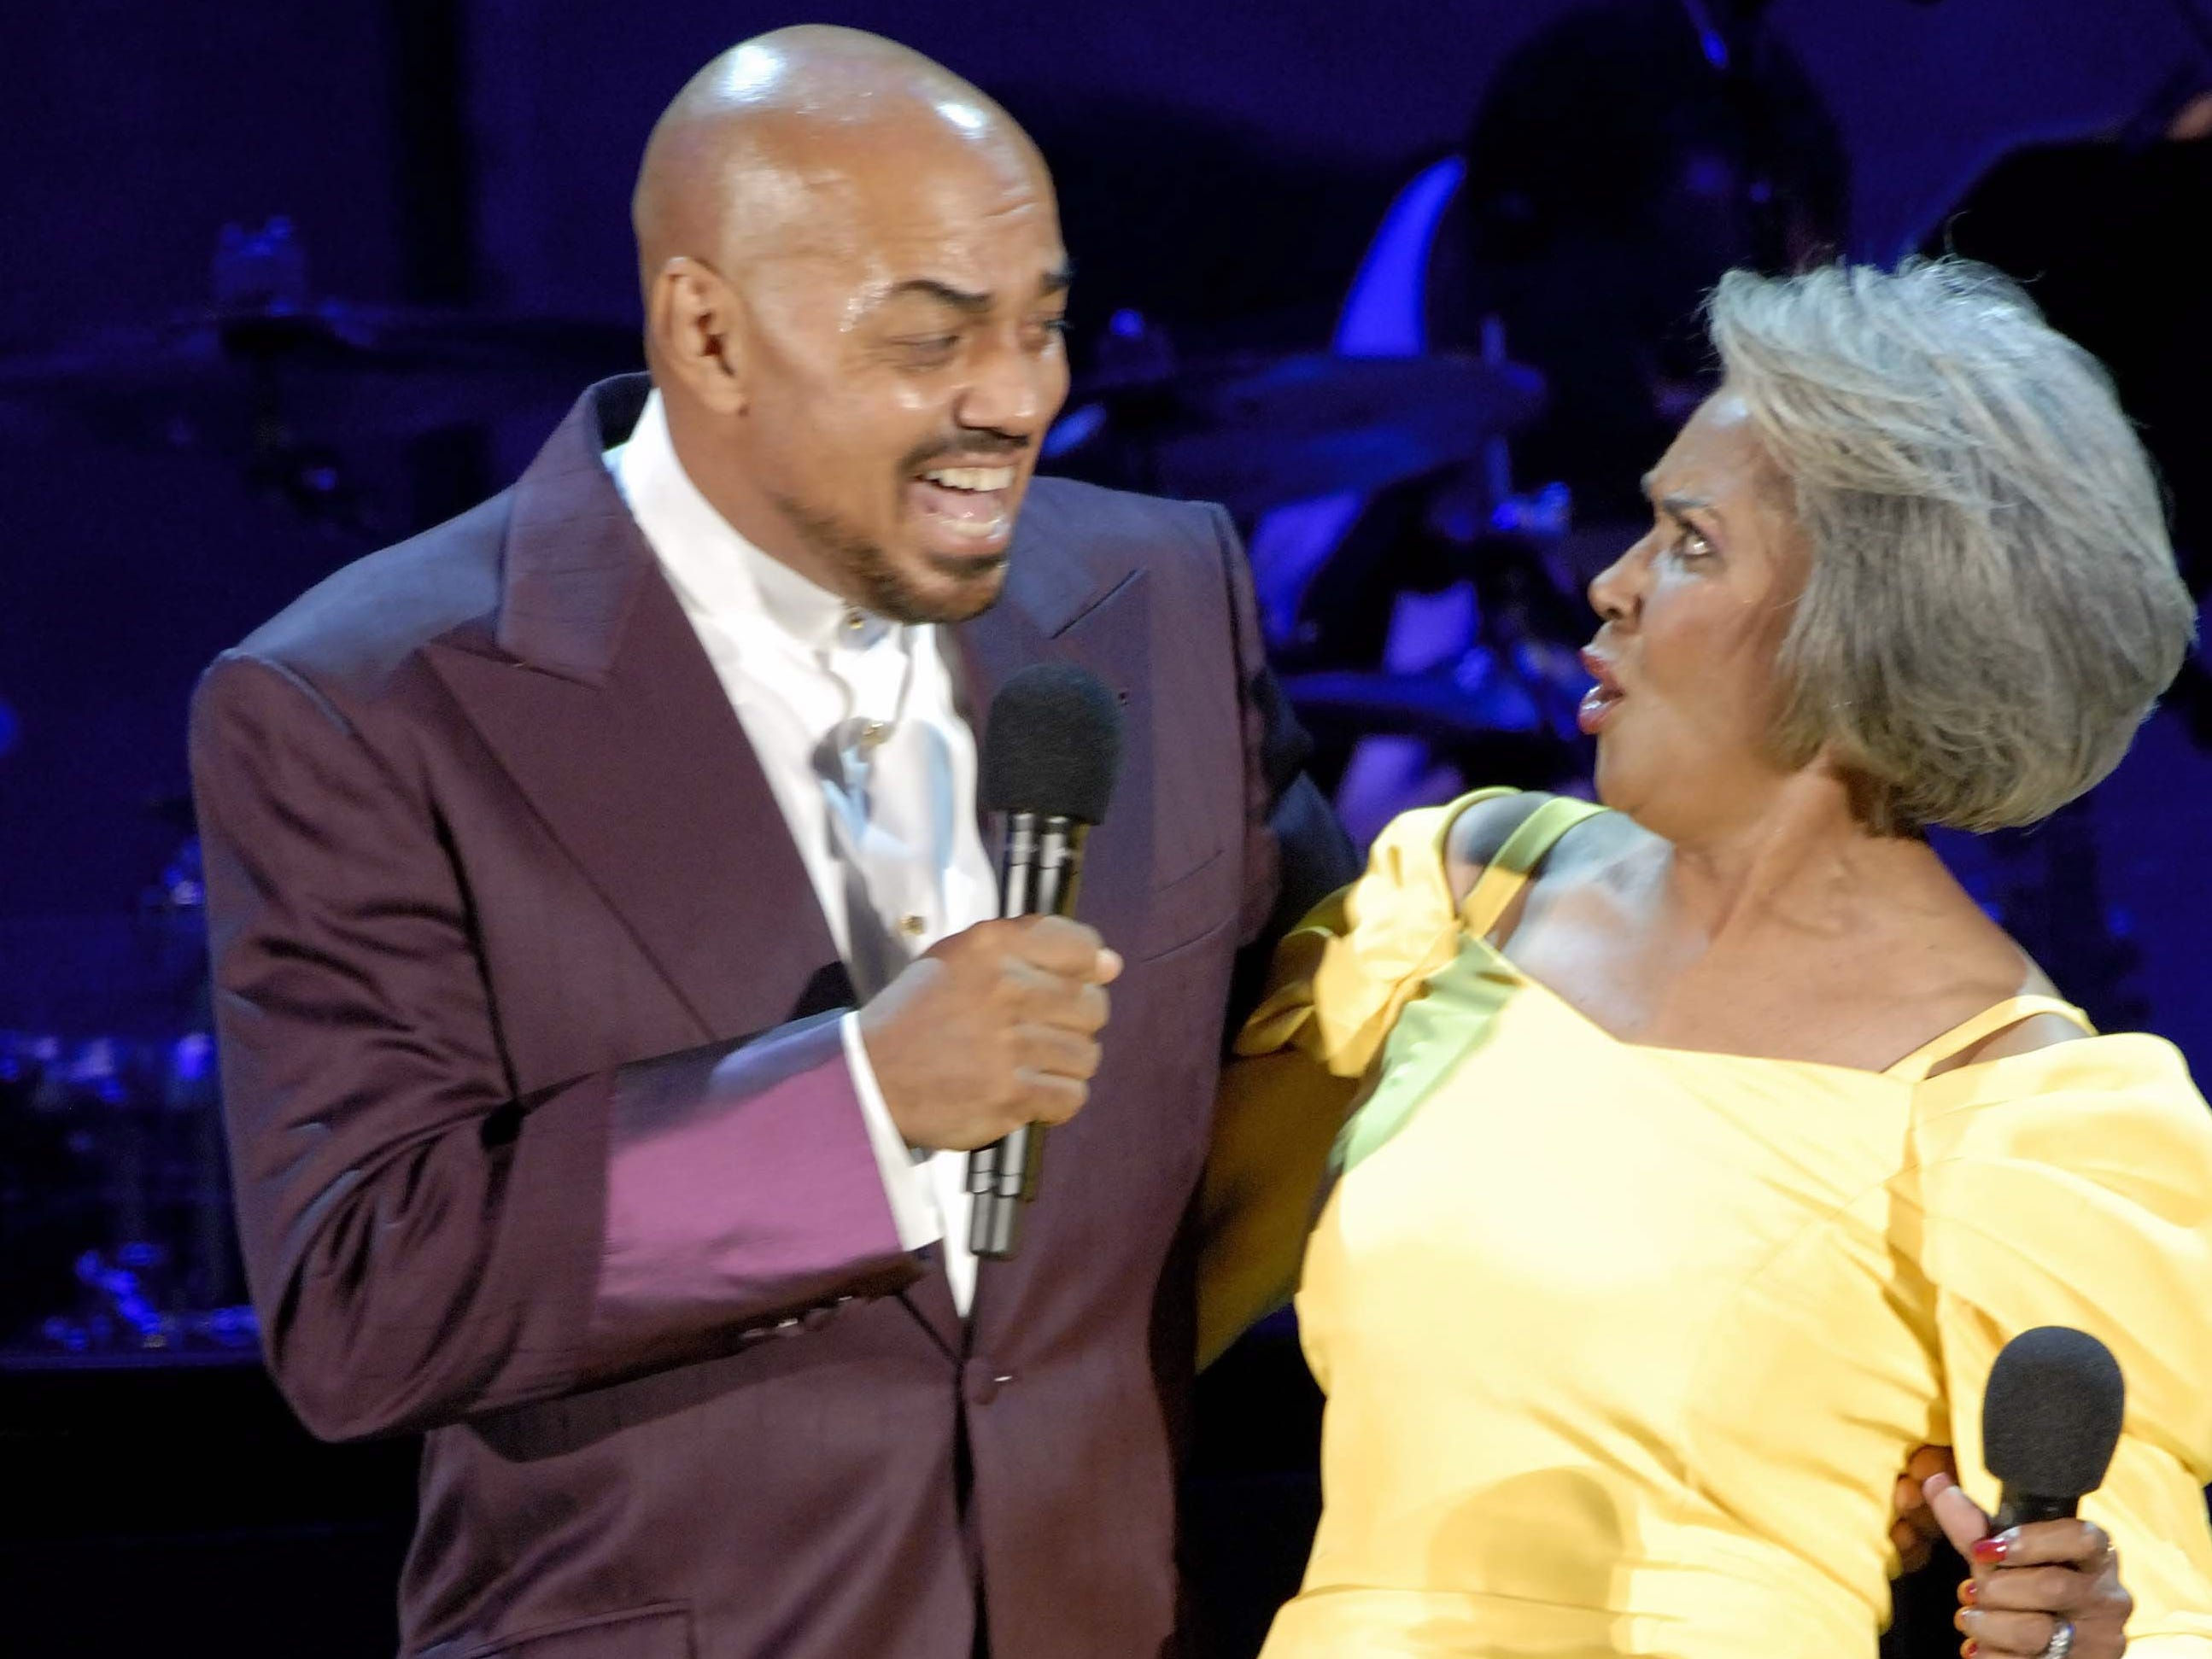 """James Ingram sings to his friend Nancy Wilson as she celebrates her """"70th Birthday Celebration"""" held at the Hollywood Bowl in Los Angeles, August 29, 2007."""